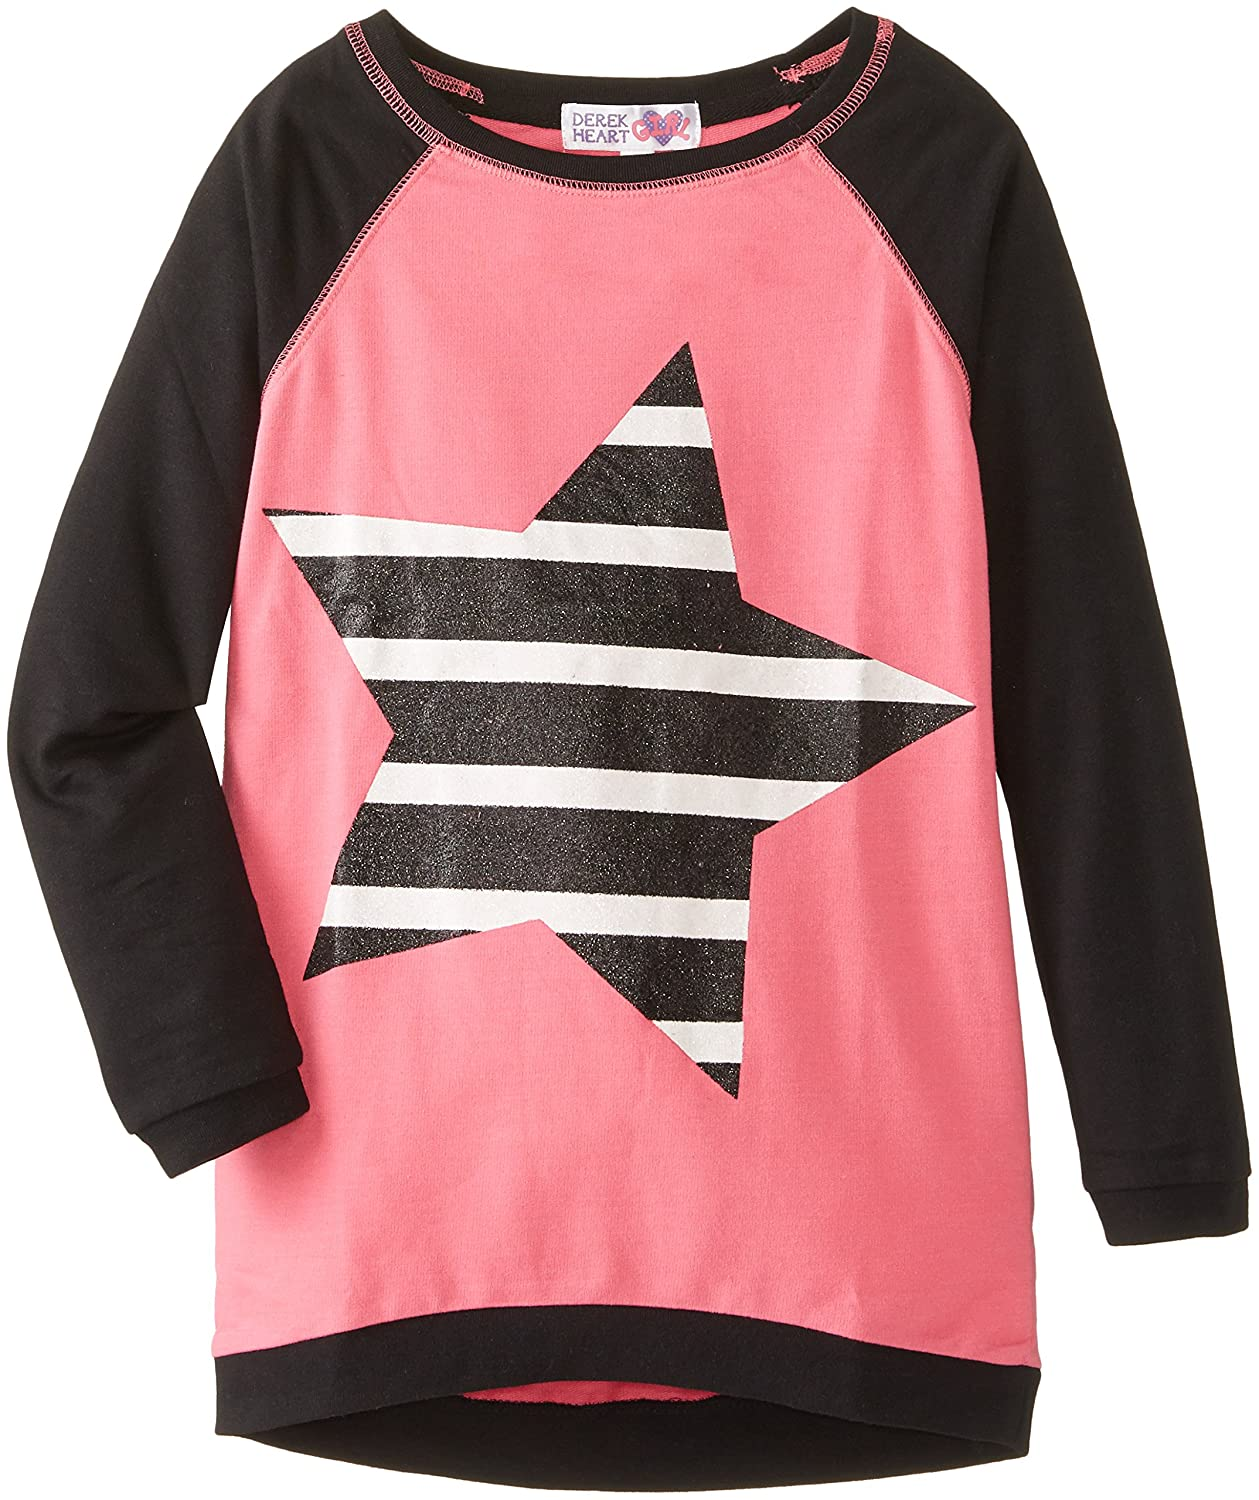 Derek Heart Big Girls' High/Low Sweatshirt with Star